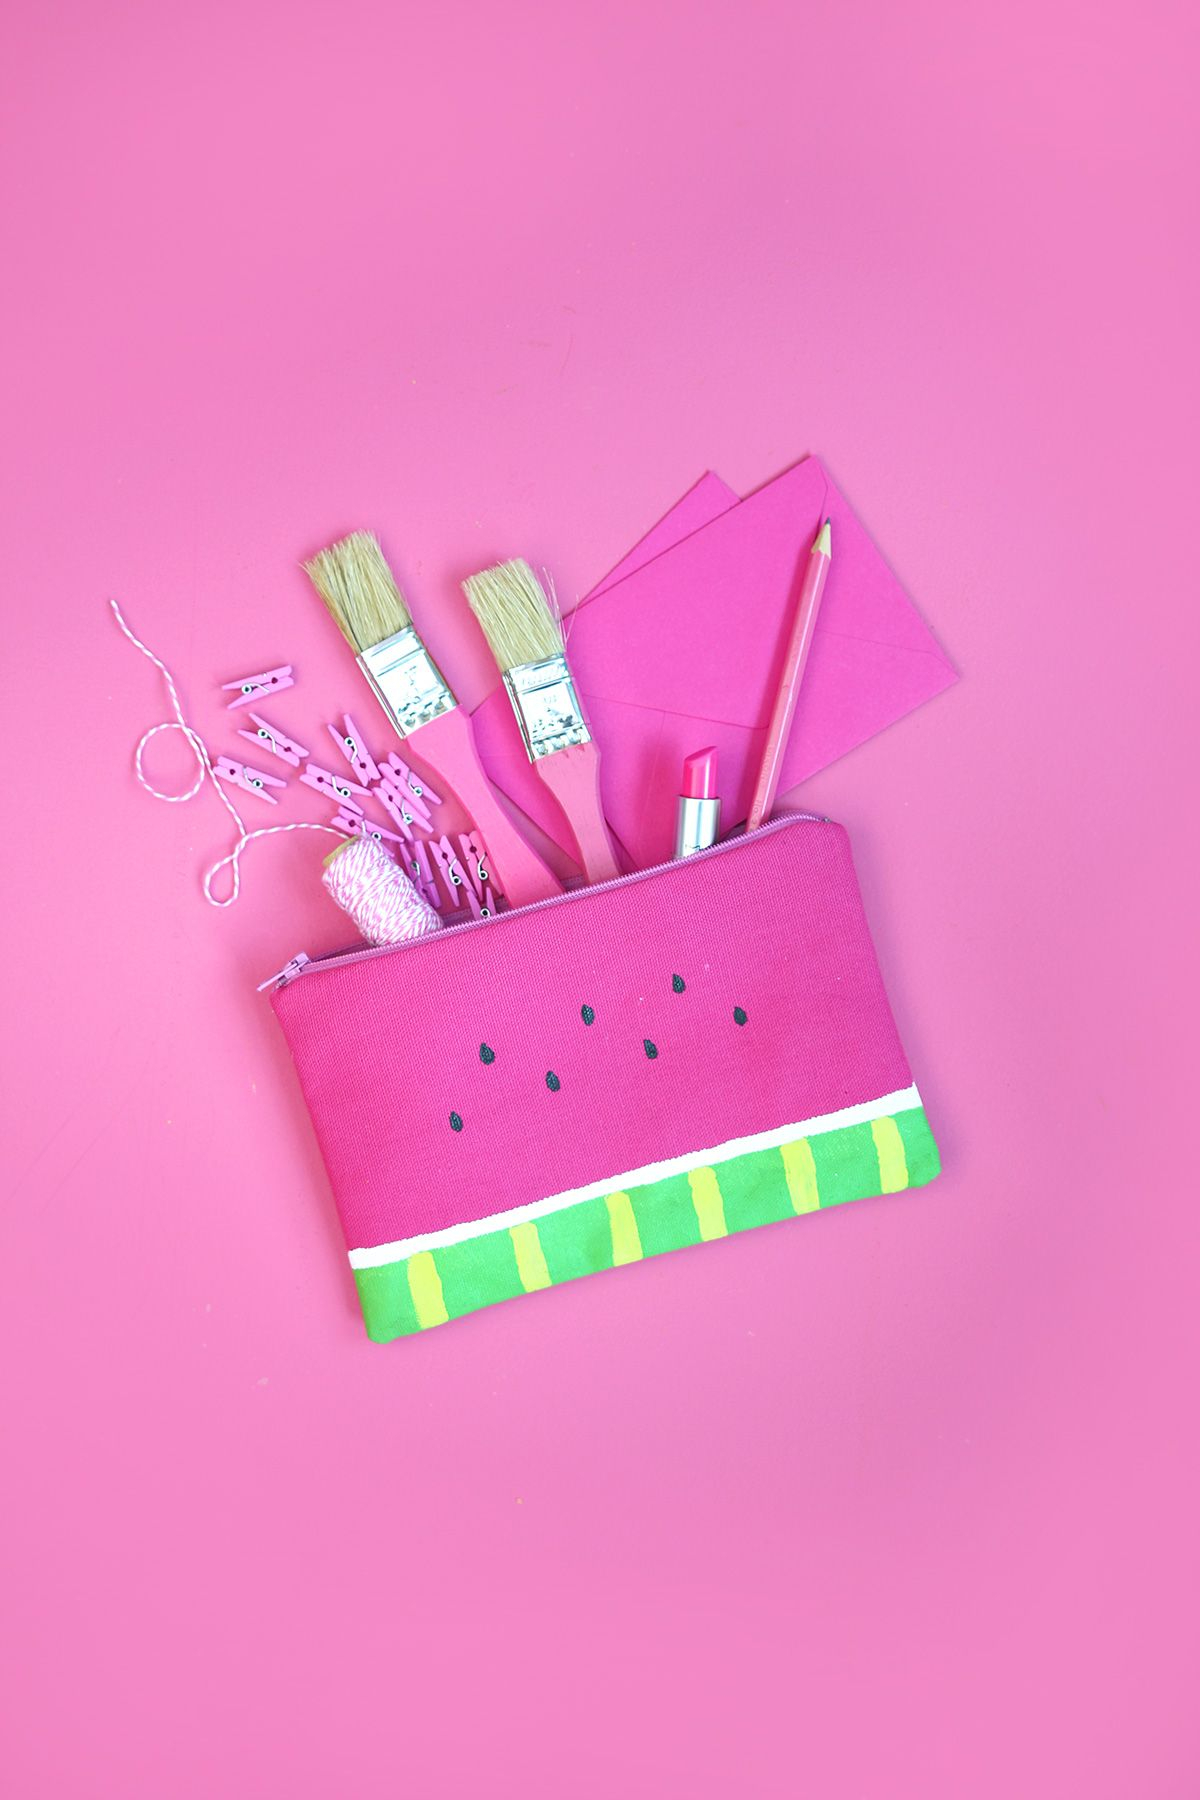 Diy strawberry pencil case DIY Stylish Pencil Cases Ideas To Elevate Your Kids Style On School